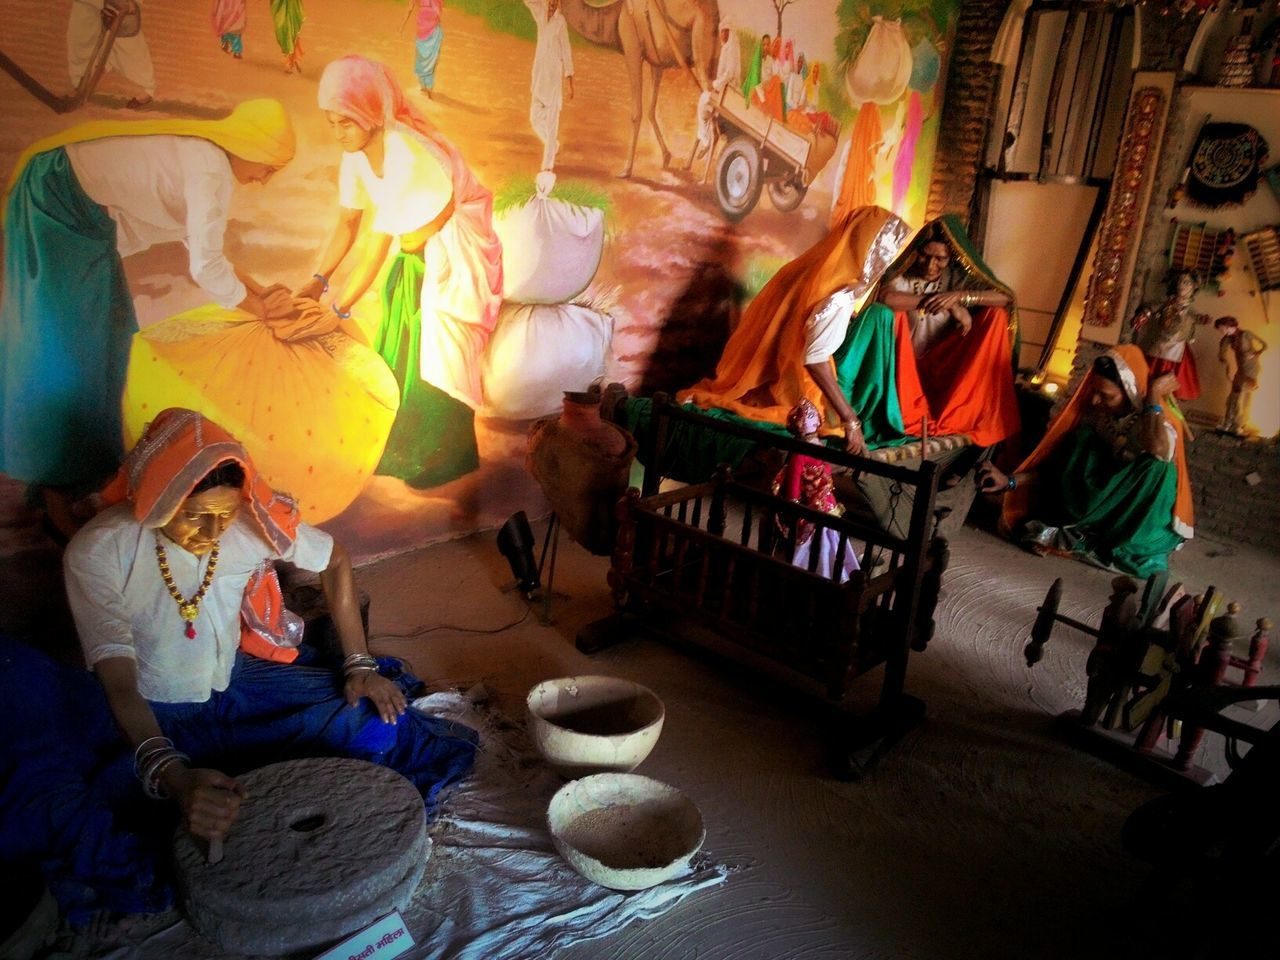 real people, indoors, sitting, traditional clothing, leisure activity, women, full length, men, lifestyles, togetherness, night, adult, young adult, people, adults only